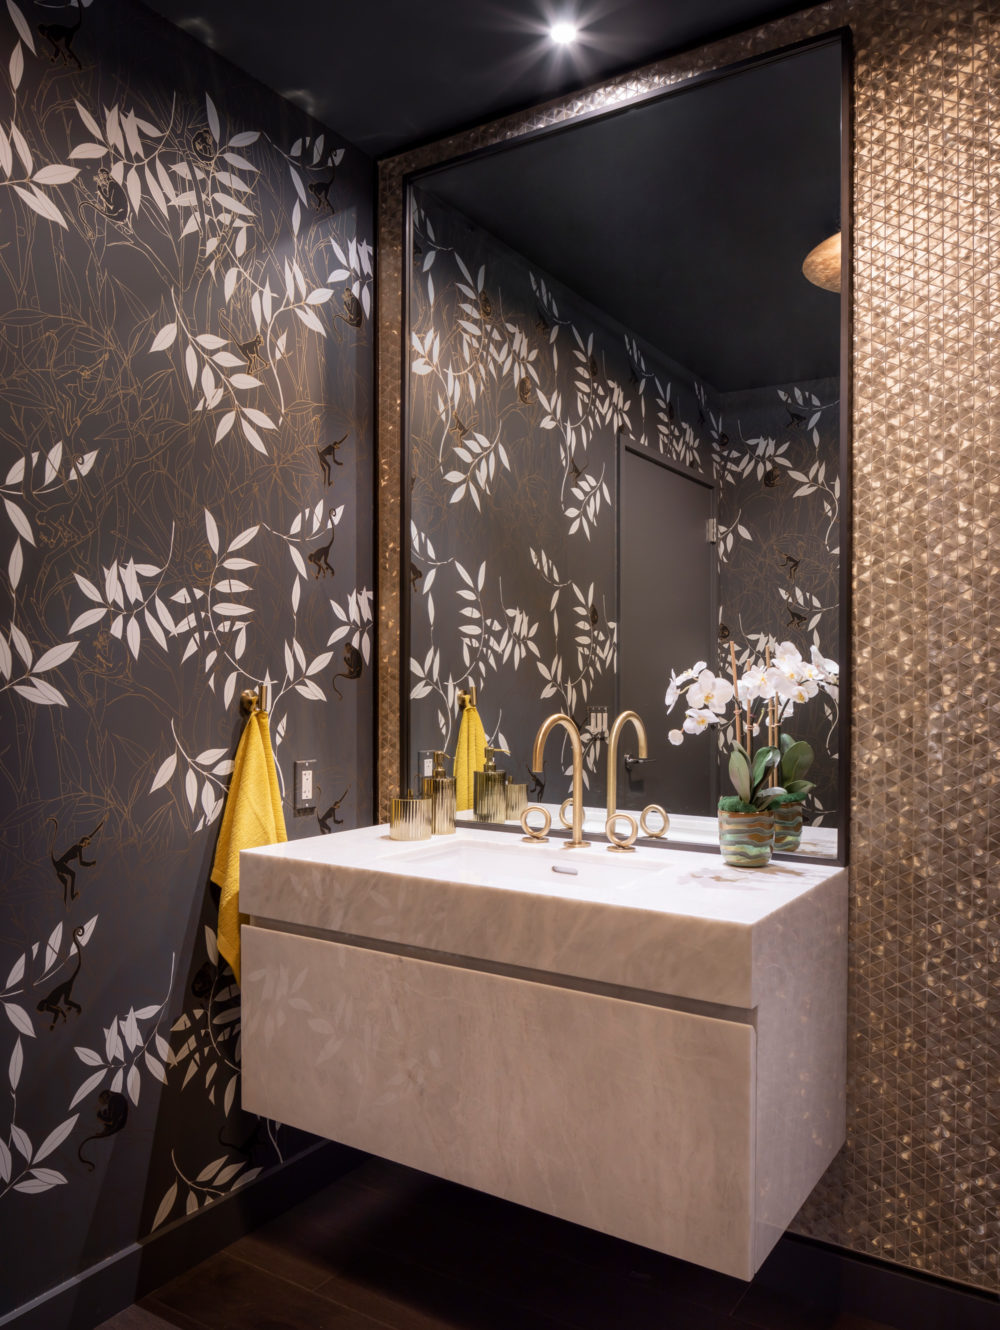 Powder room at The Avery luxury condominiums in SF. Floral wallpaper, marble vanity with gold accents and a large mirror.